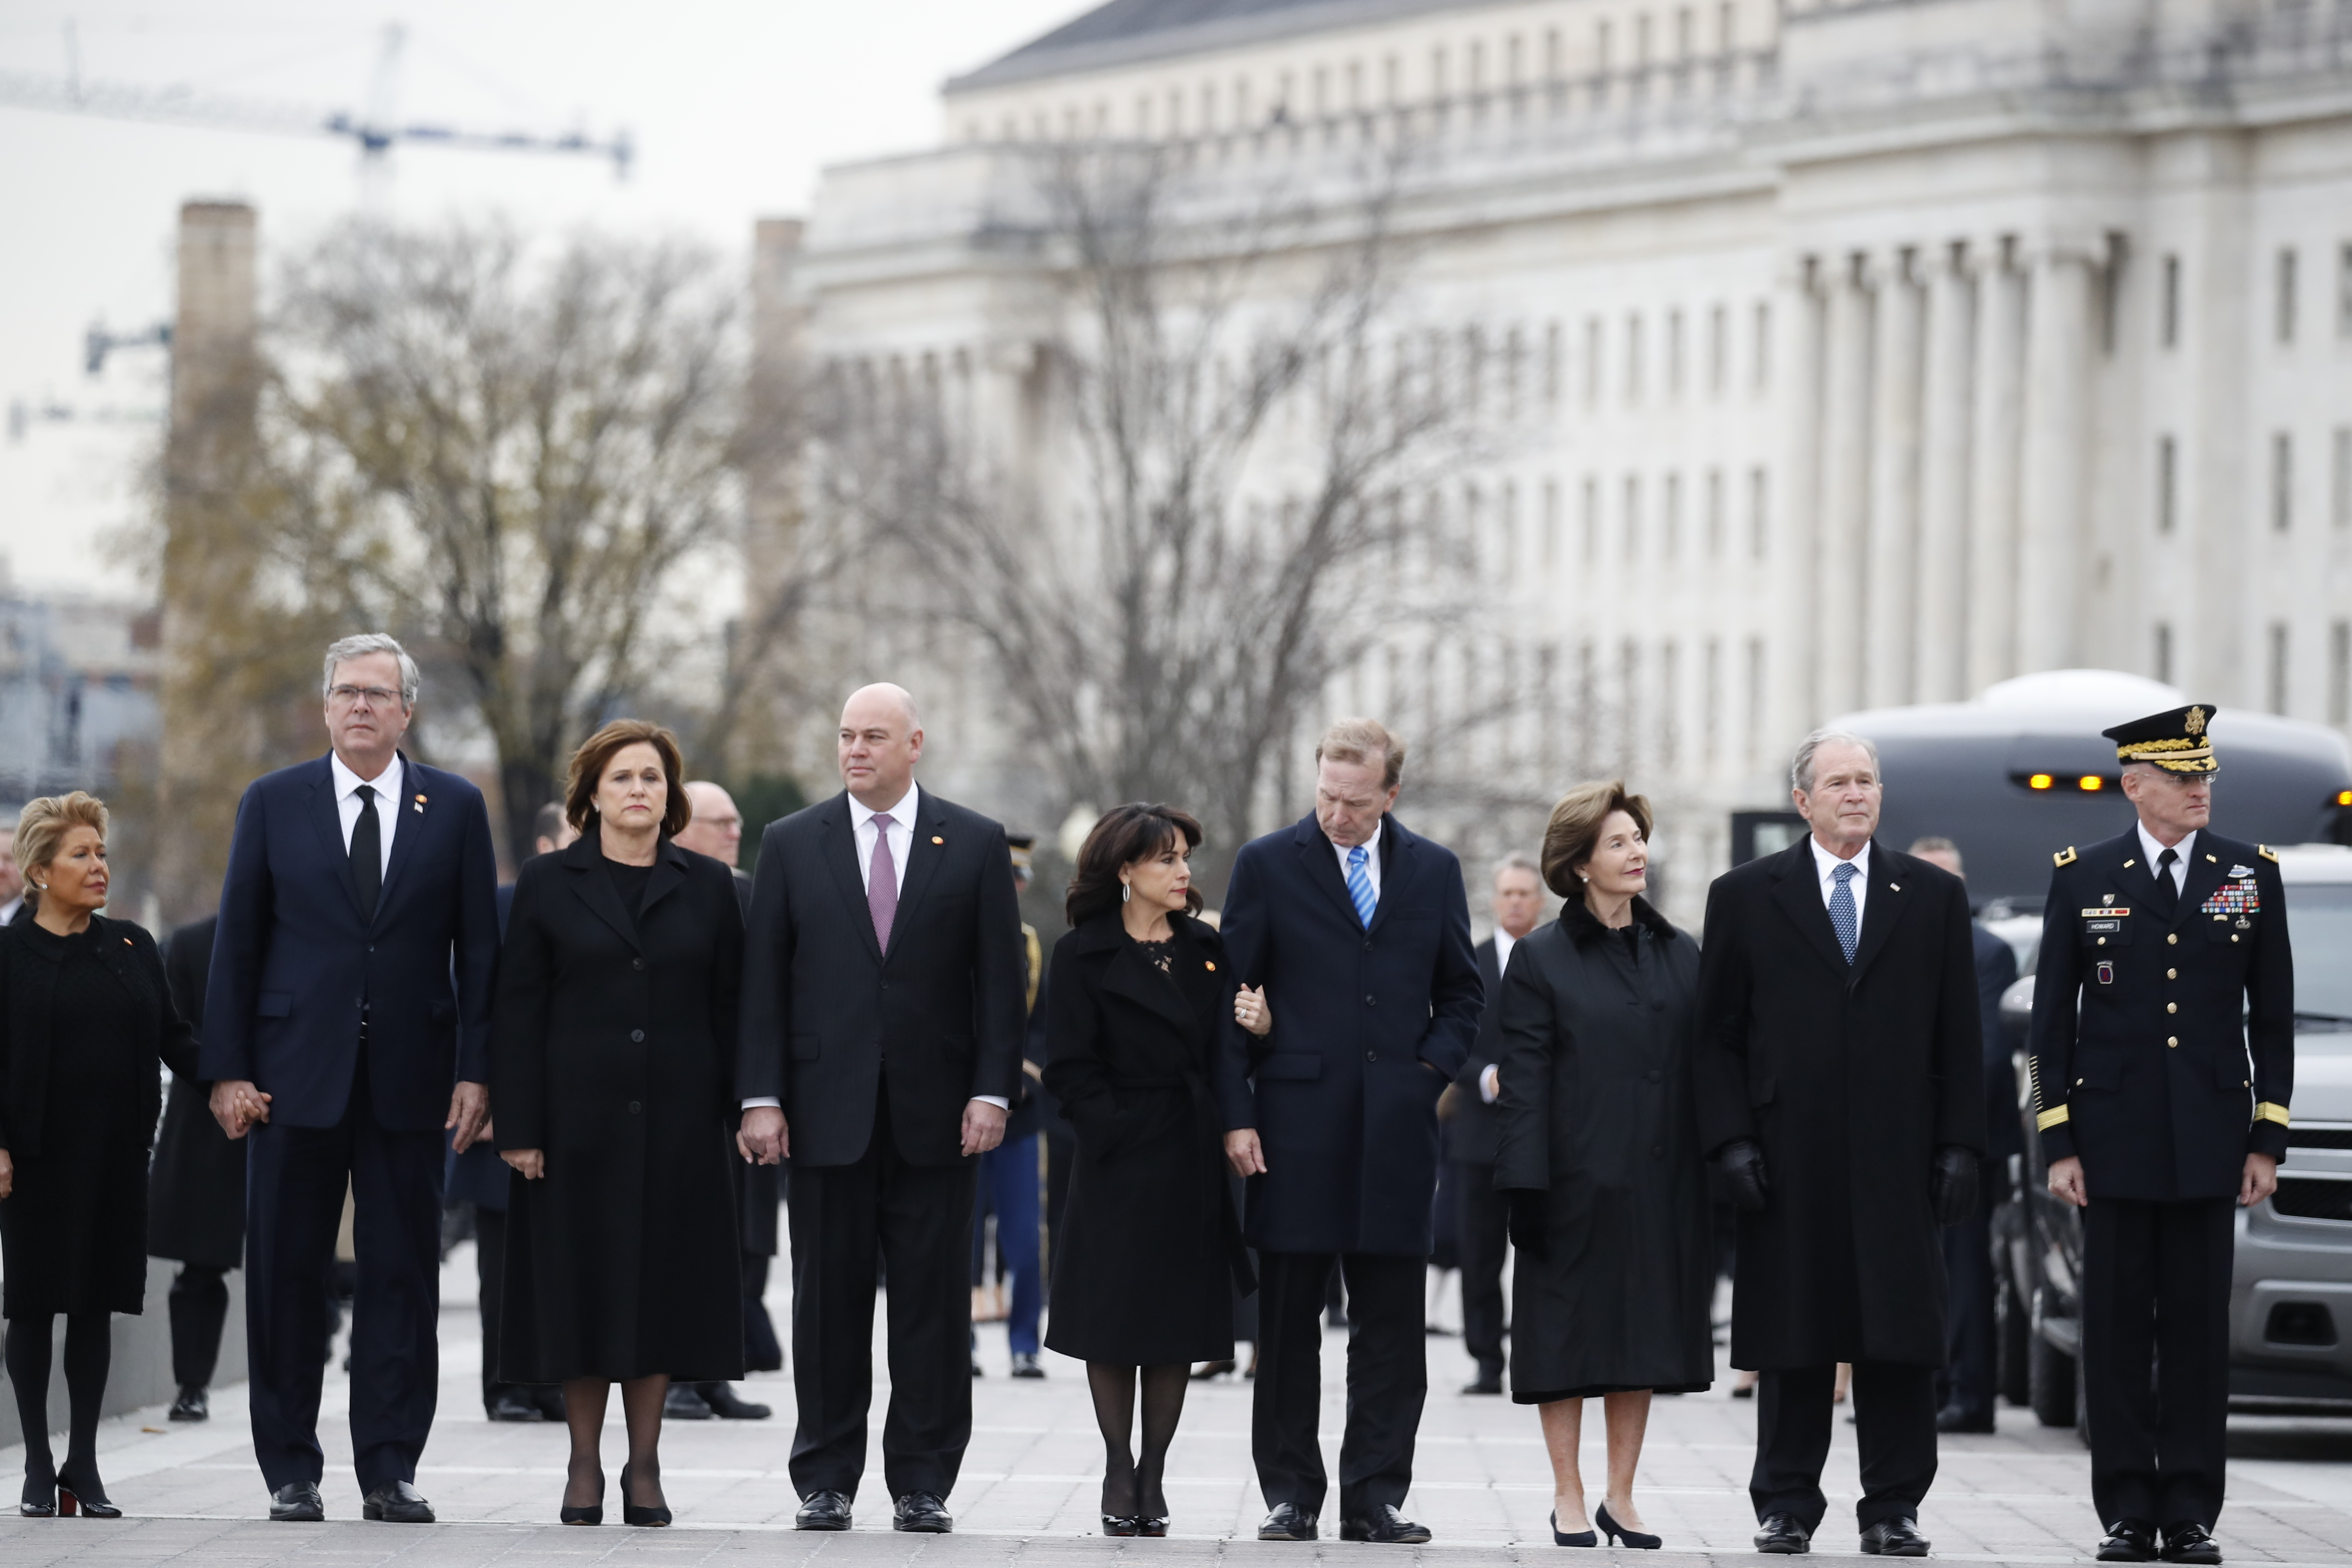 From right, former President George W. Bush, second from right, former first lady Laura Bush, Neil Bush, Maria Bush, Bobby Koch, Doro Koch, Jeb Bush and Columba Bush, stand just prior to the flag-draped casket of former President George H.W. Bush being carried by a joint services military honor guard from the U.S. Capitol, Wednesday, Dec. 5, 2018, in Washington. (AP Photo/Alex Brandon, Pool)